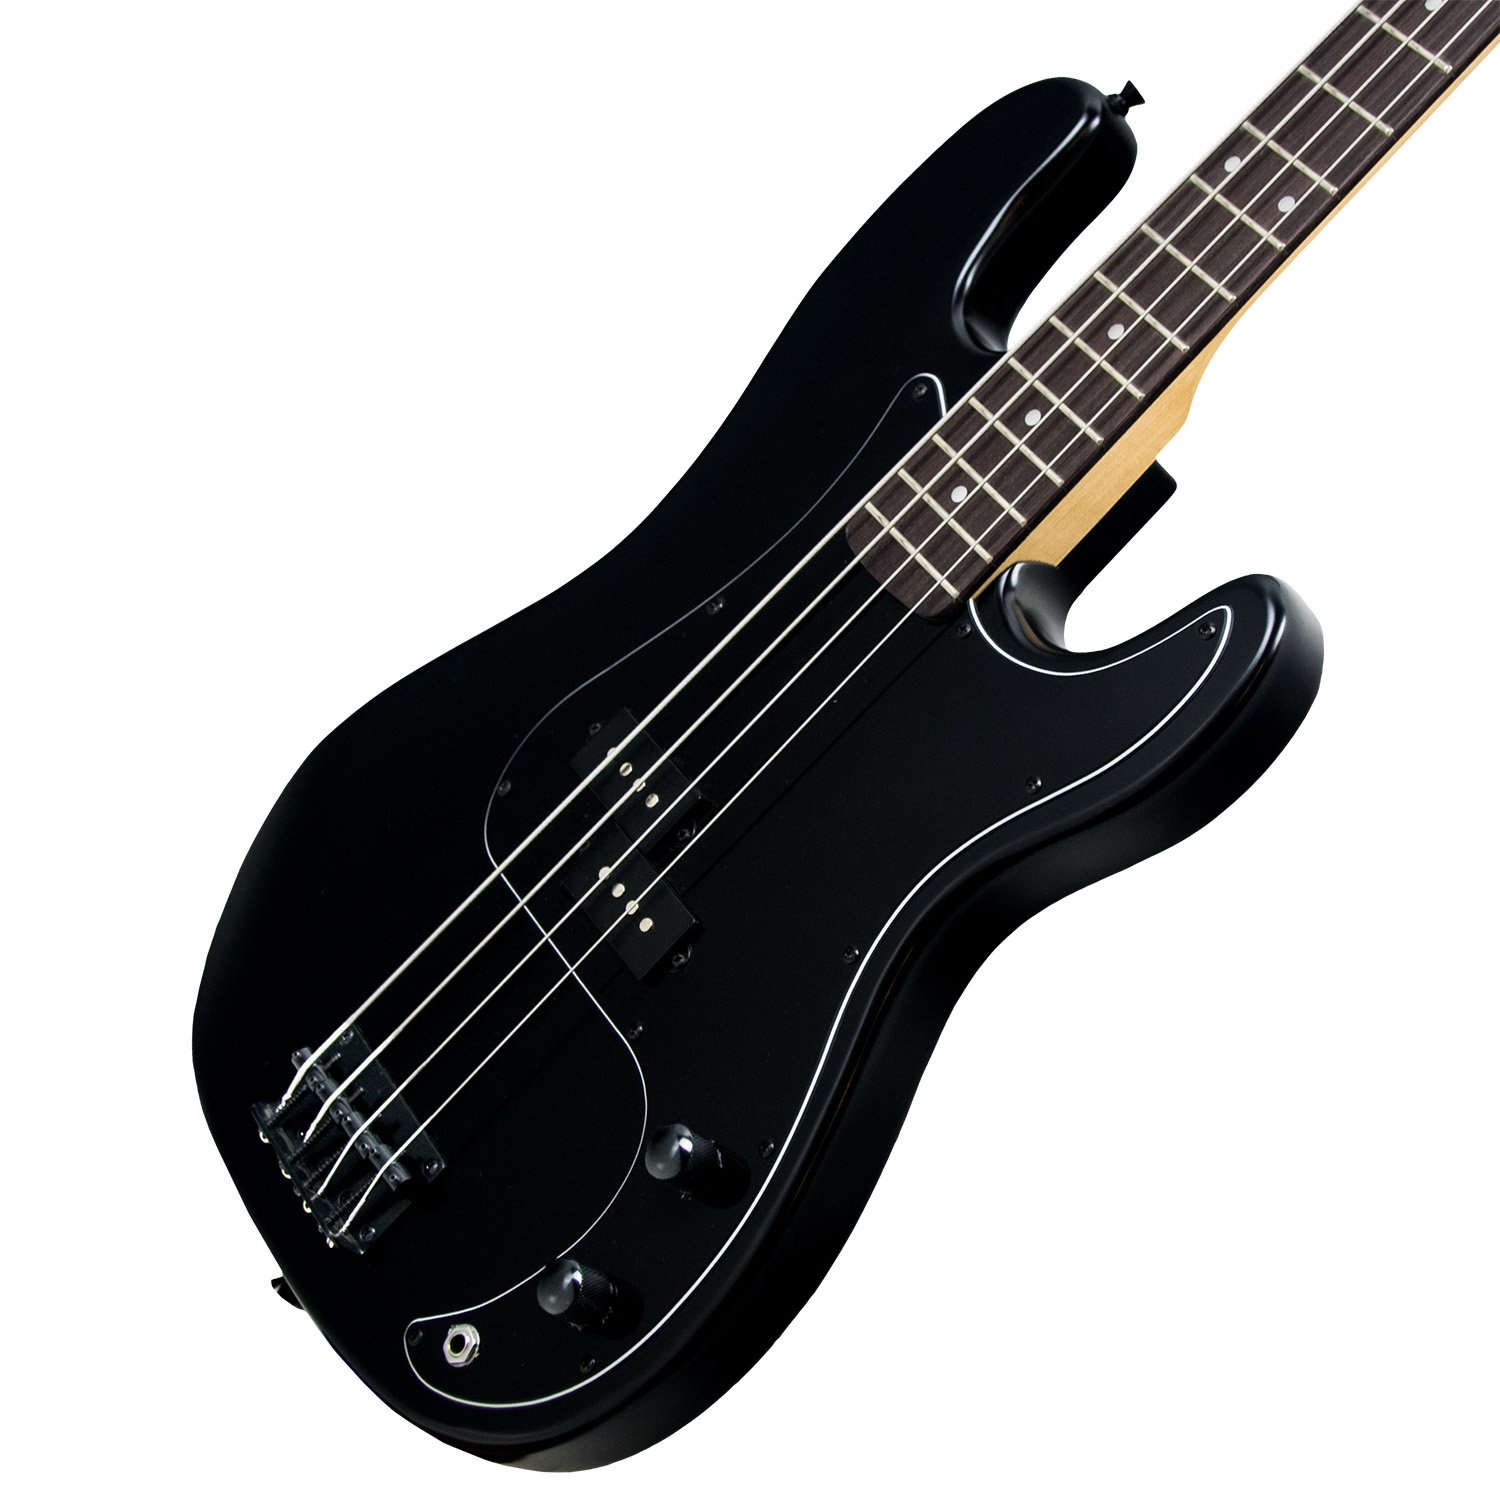 Sawtooth 4 String EP Series Electric Bass Guitar with Gig Bag & Accessories, Satin w/Black Pickguard, Right Handed (ST-PB-STNBKB-KIT-1) by Sawtooth (Image #8)